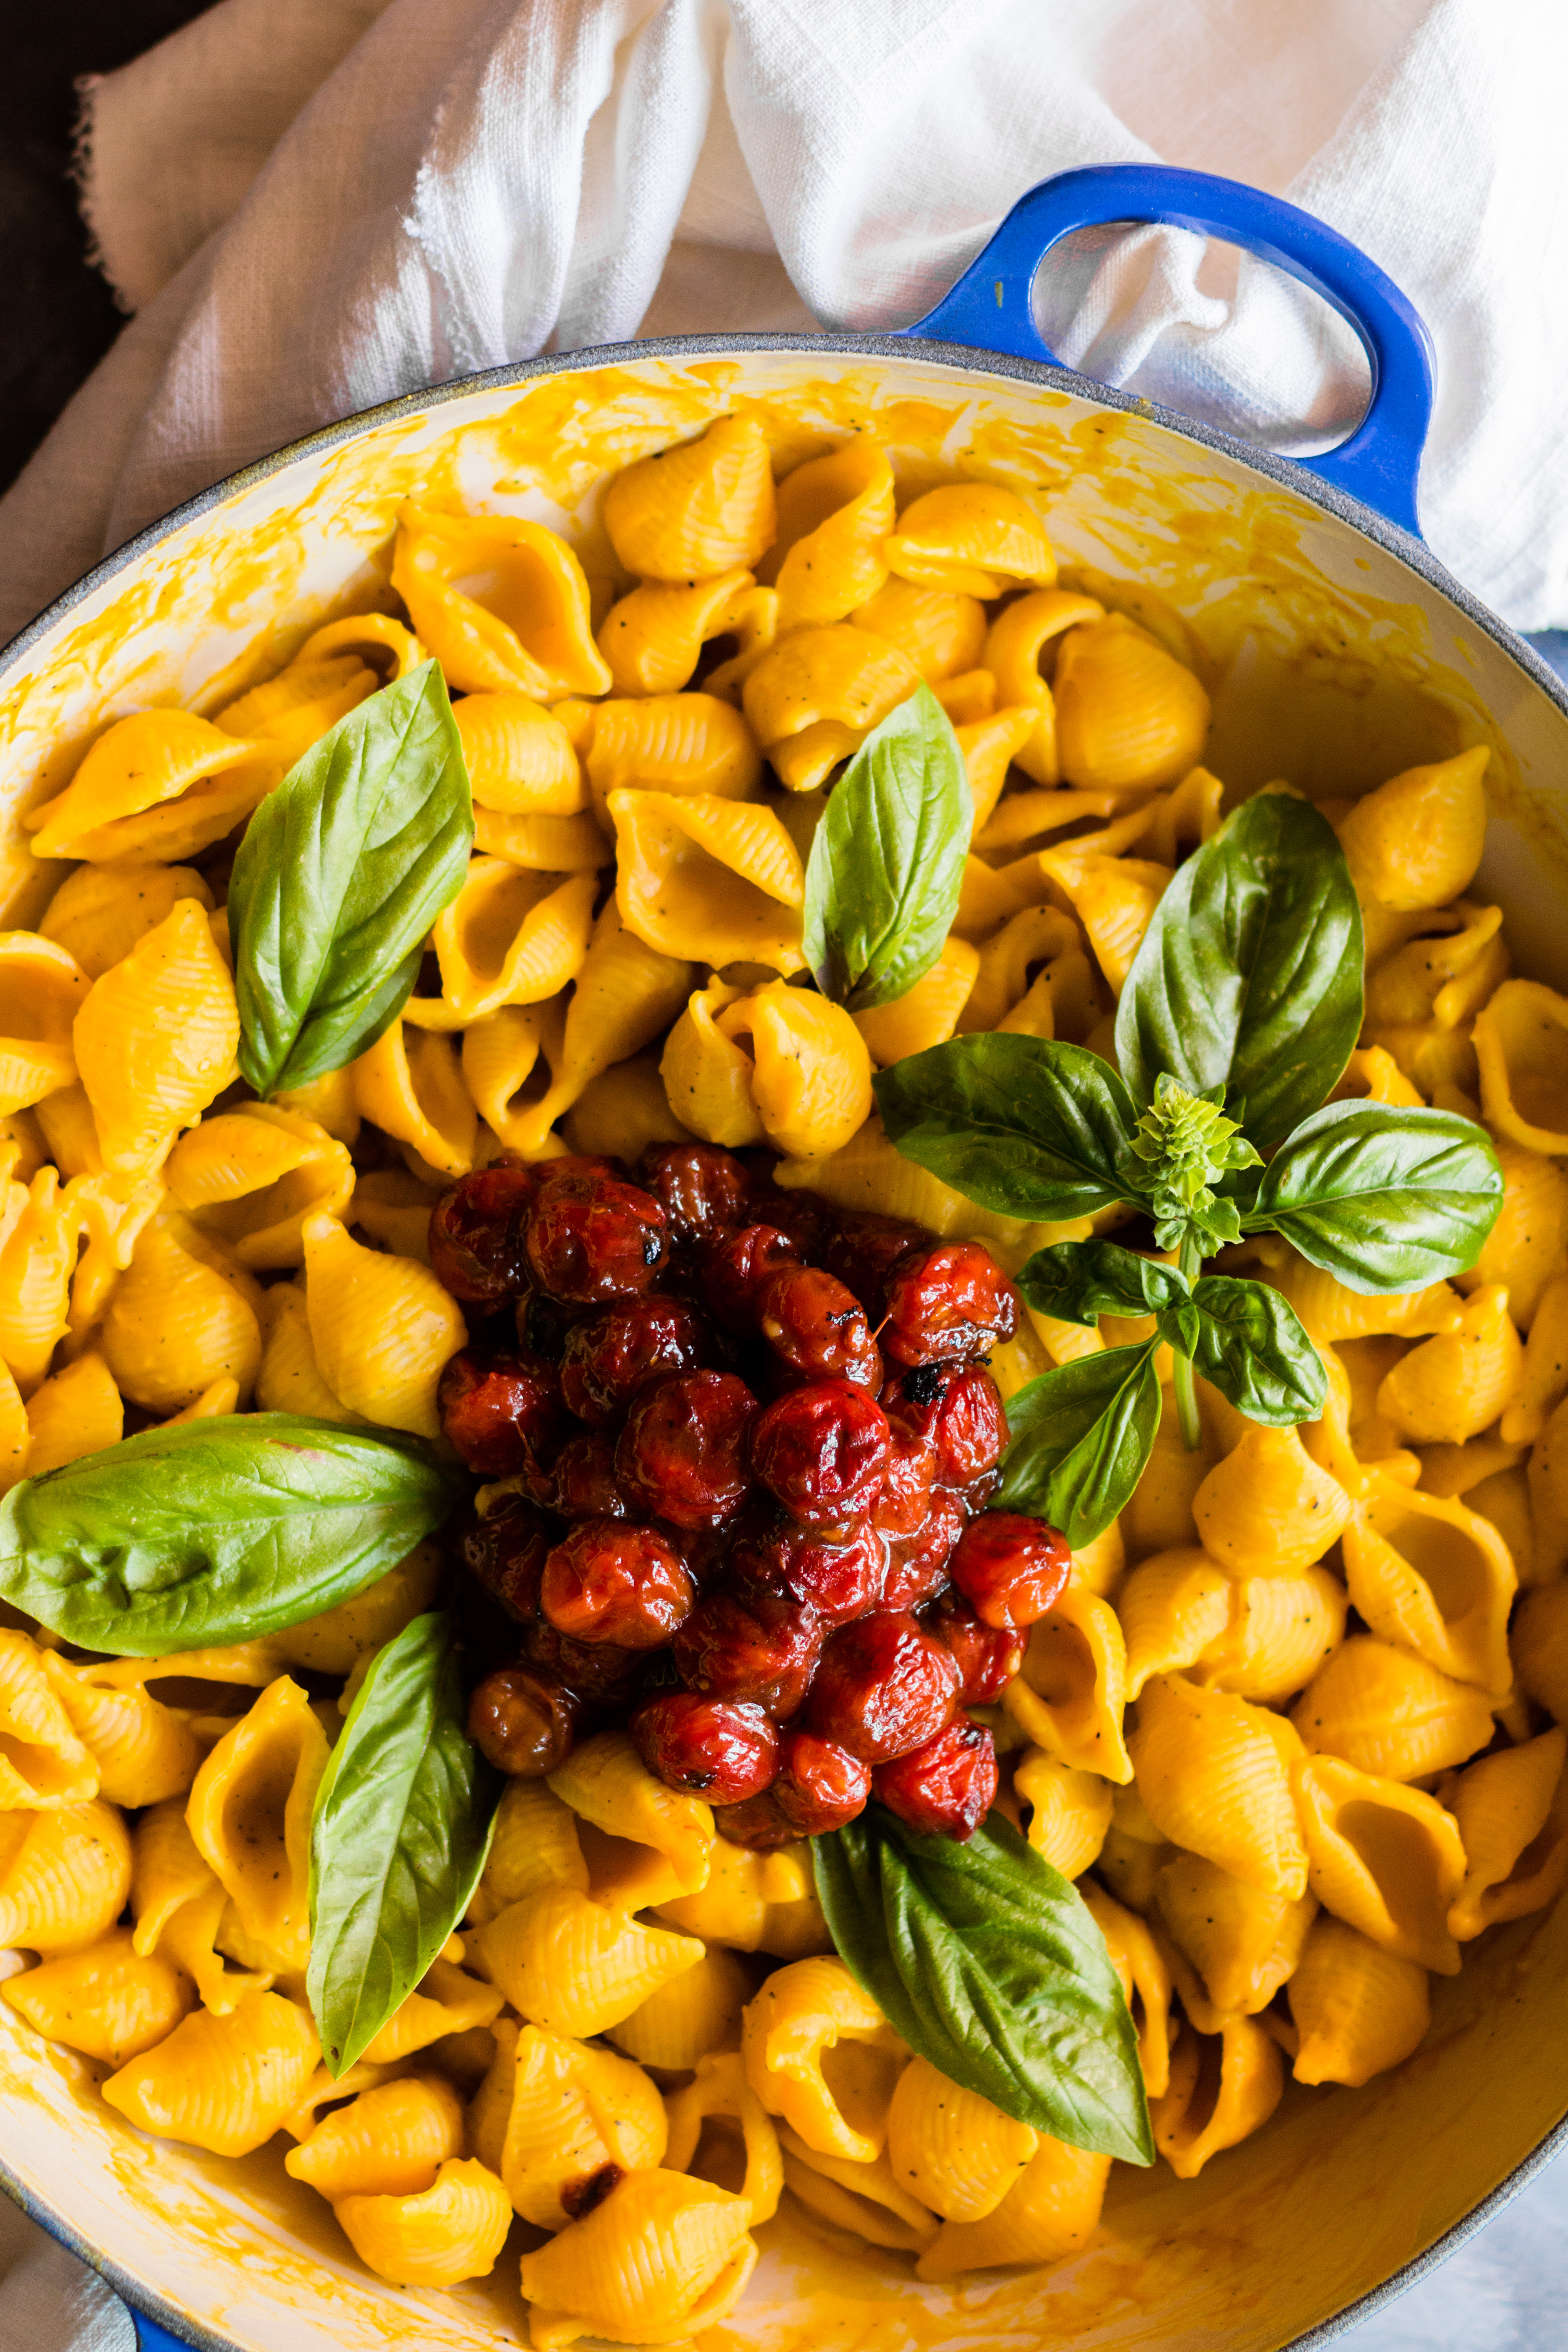 This Mac and Cheese with Vegan Pumpkin Cheese Sauce is so creamy and cheesy tasting, people will ask what kind of cheese you used. Serve with a side of slow roasted cherry tomatoes for an explosion of flavor. | #pumpkin #vegan | www.megiswell.com